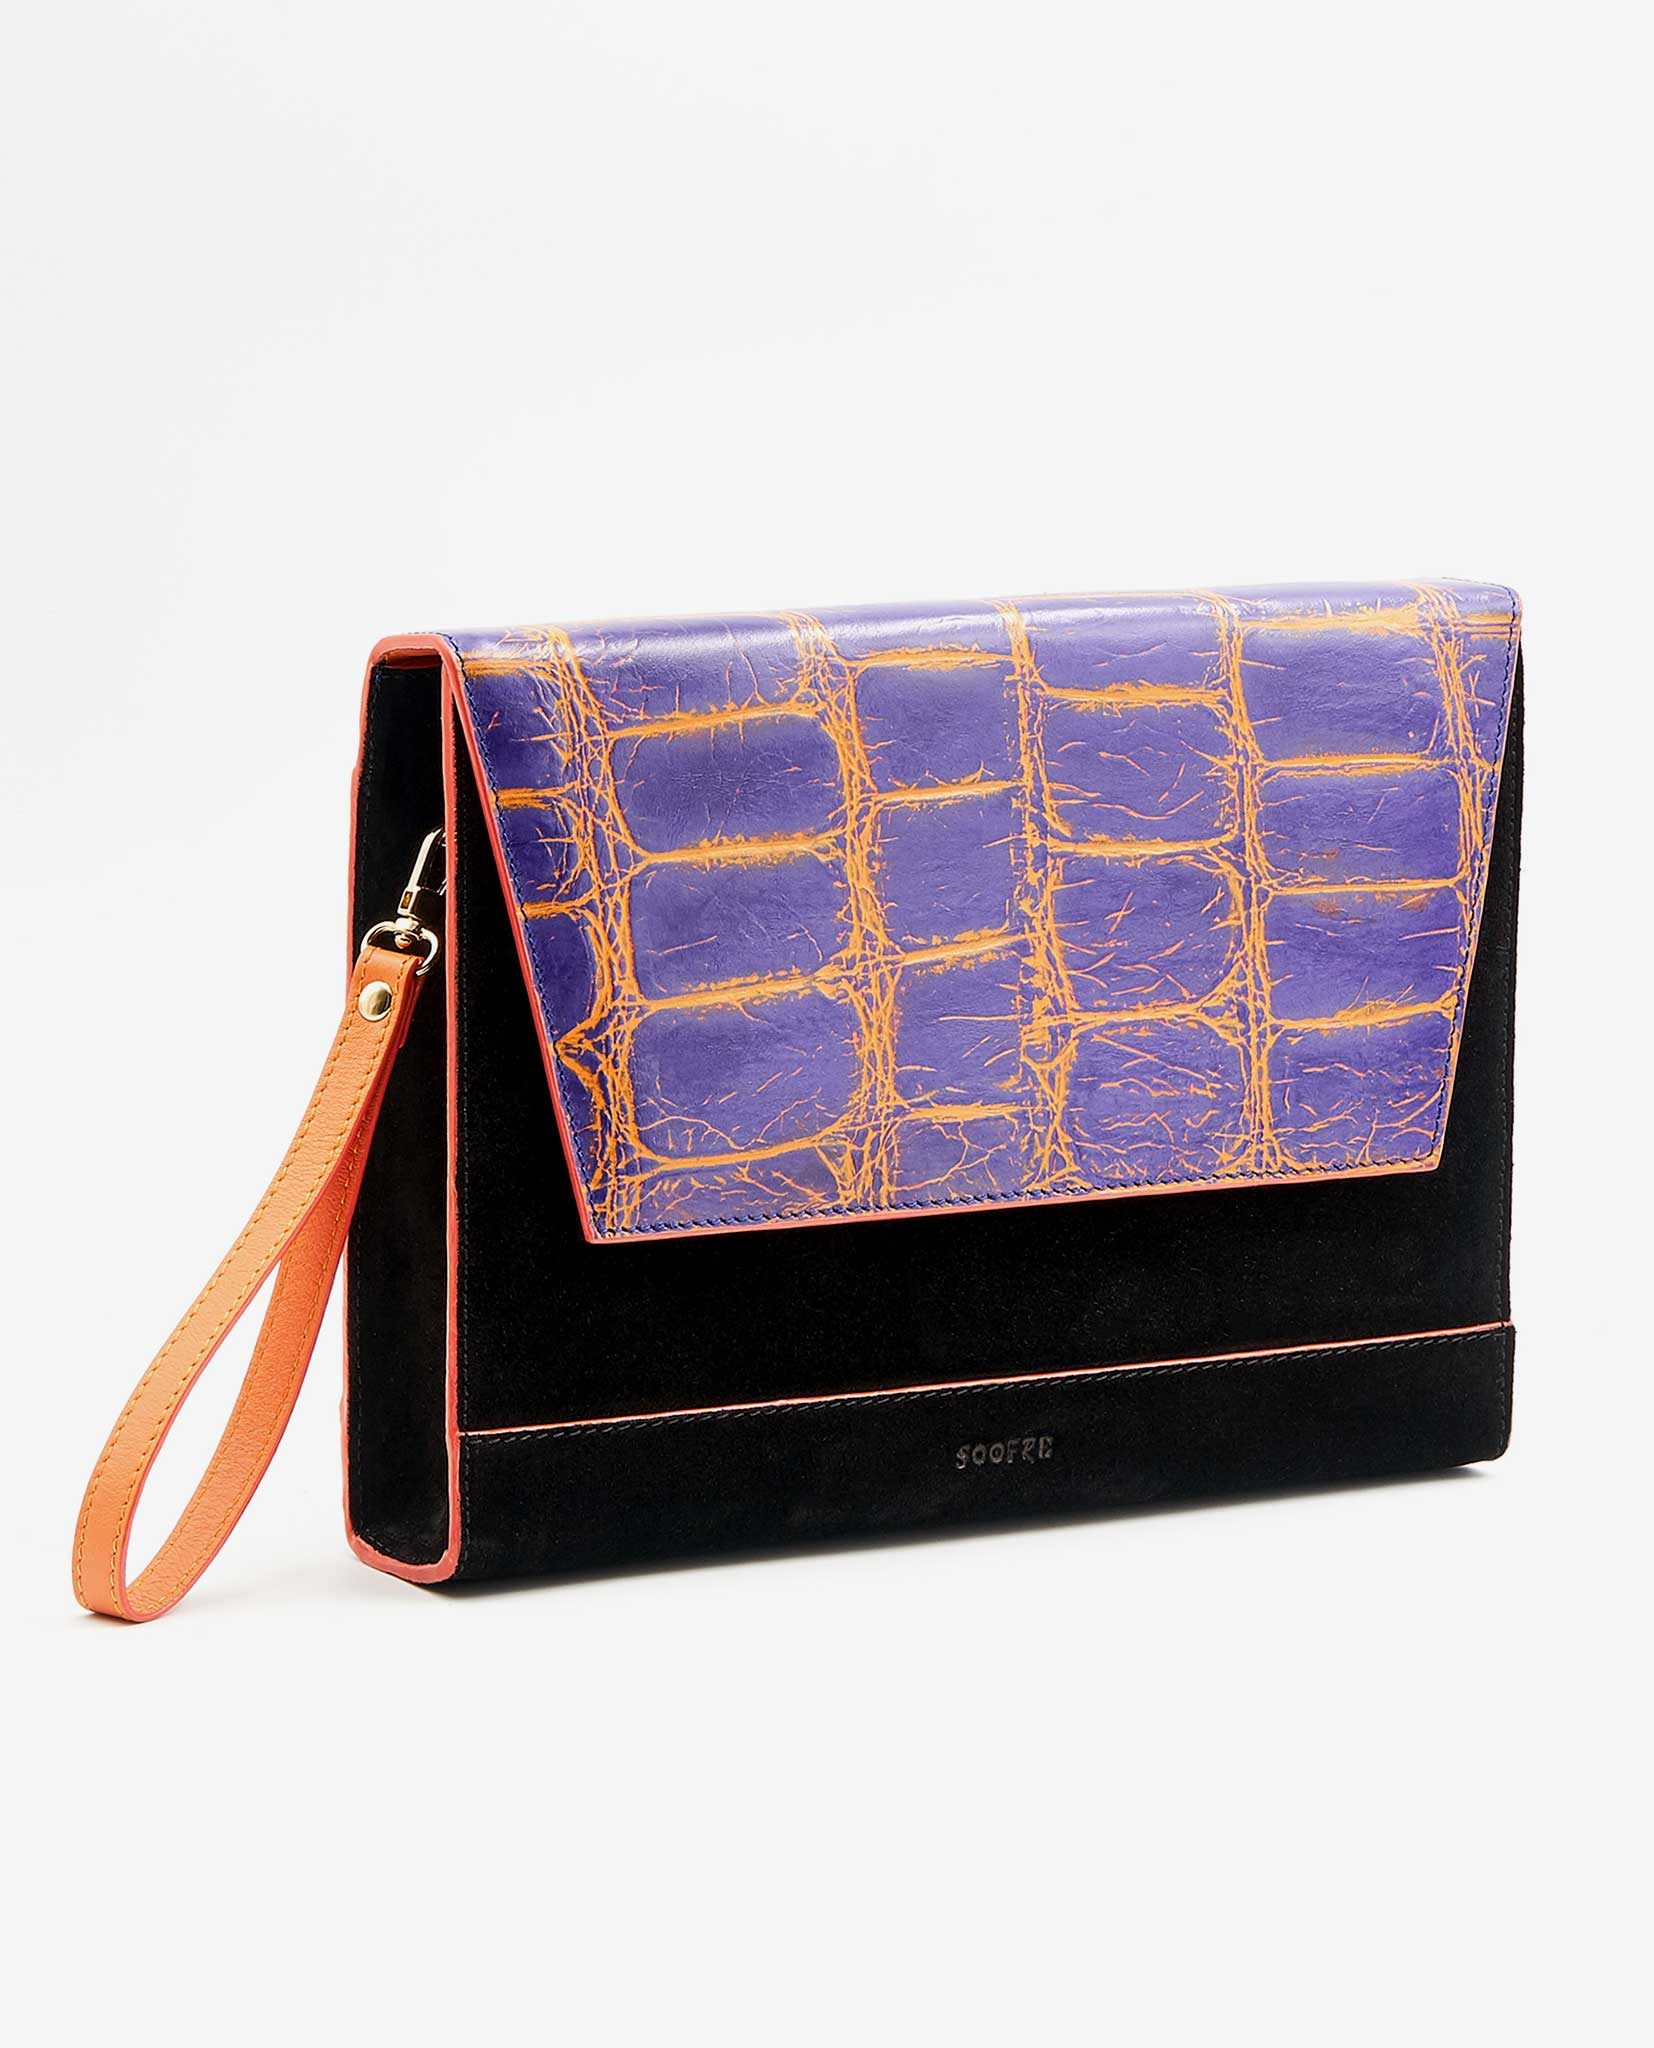 SOOFRE Berlin unique Clutch croco purple orange black